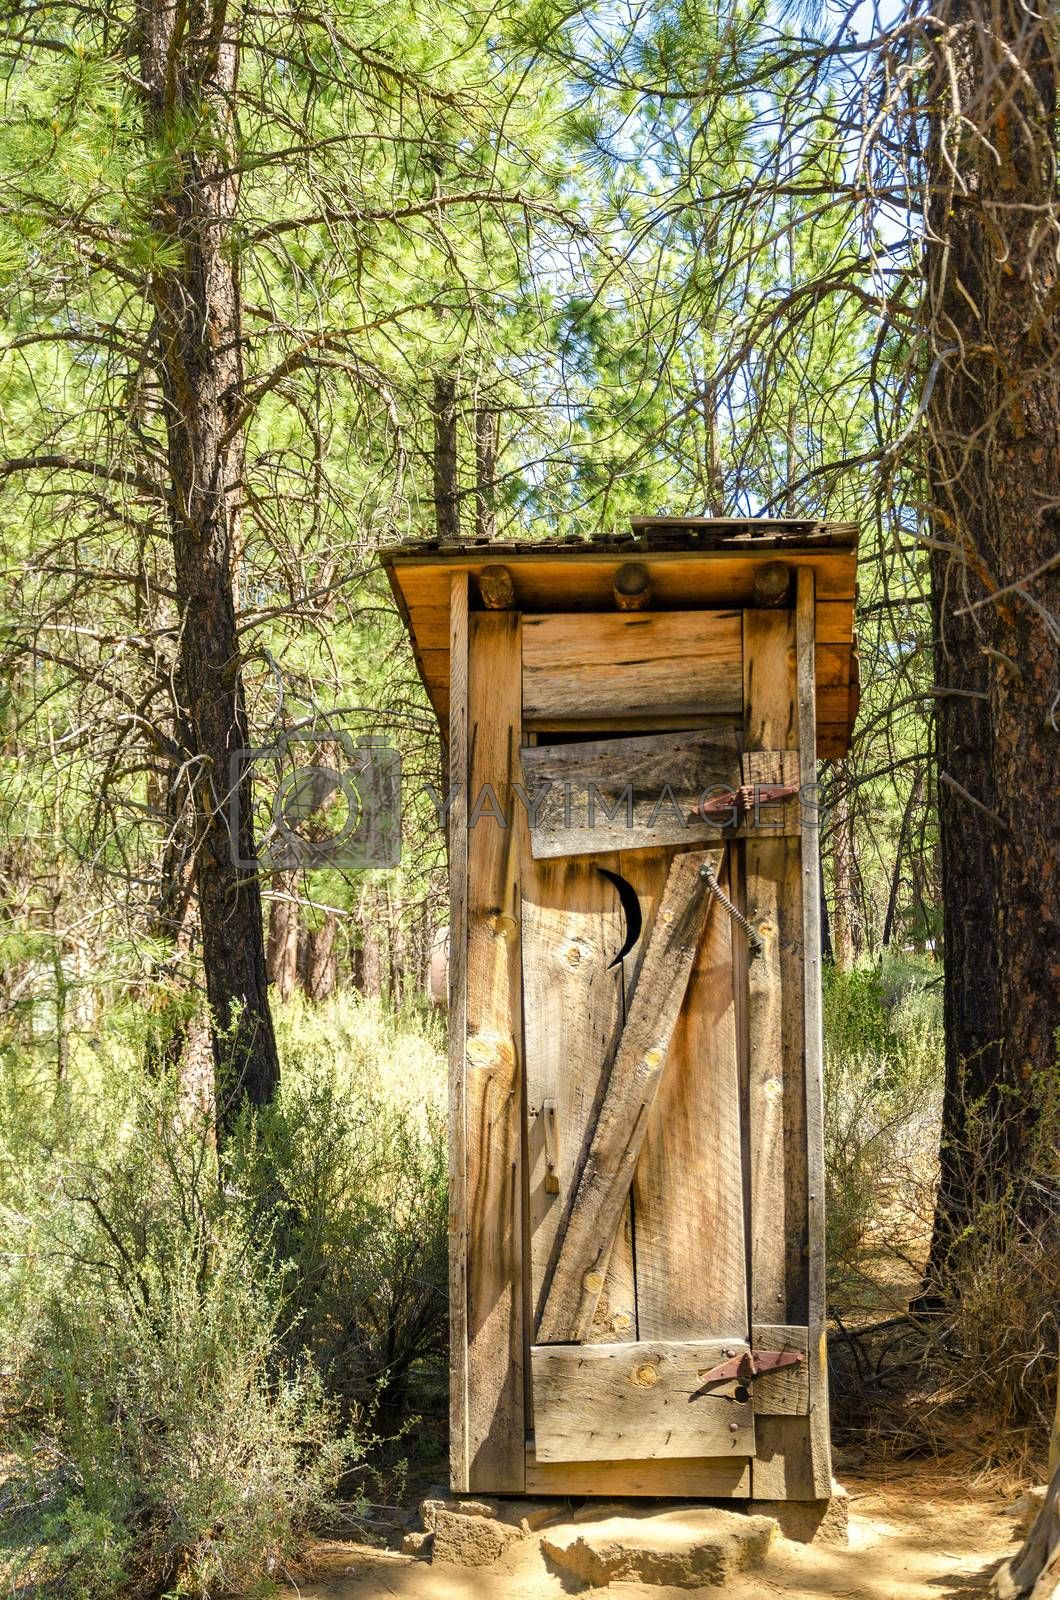 Old wooden historic outhouse in Bend, Oregon